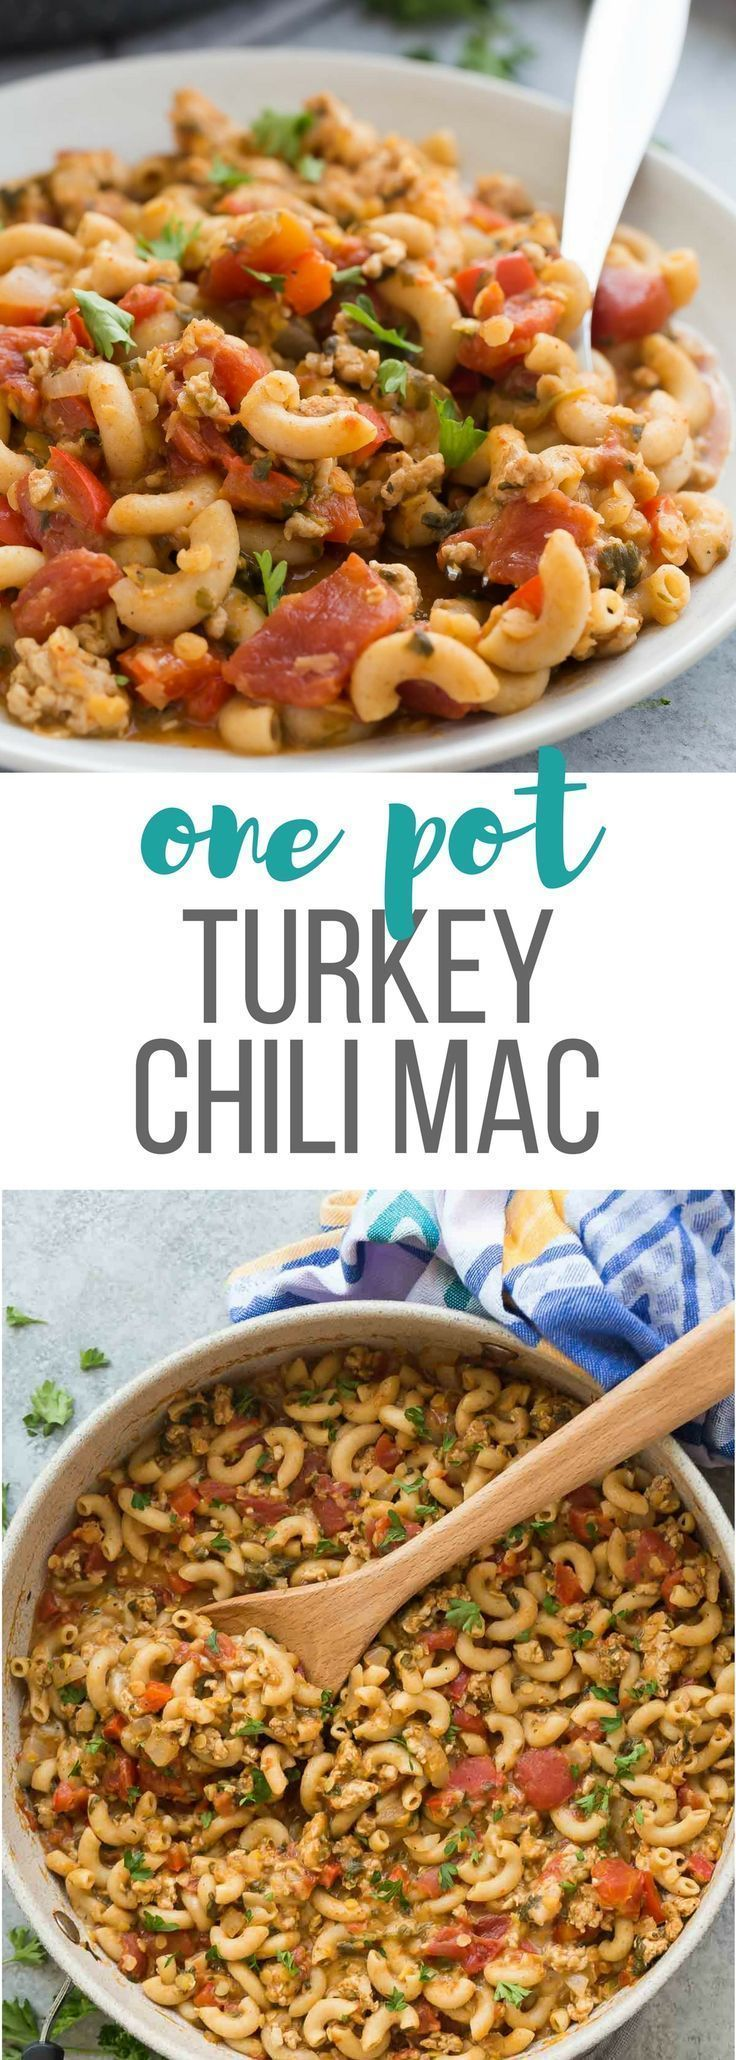 One Pot Turkey Chili Mac Recipe + VIDEO